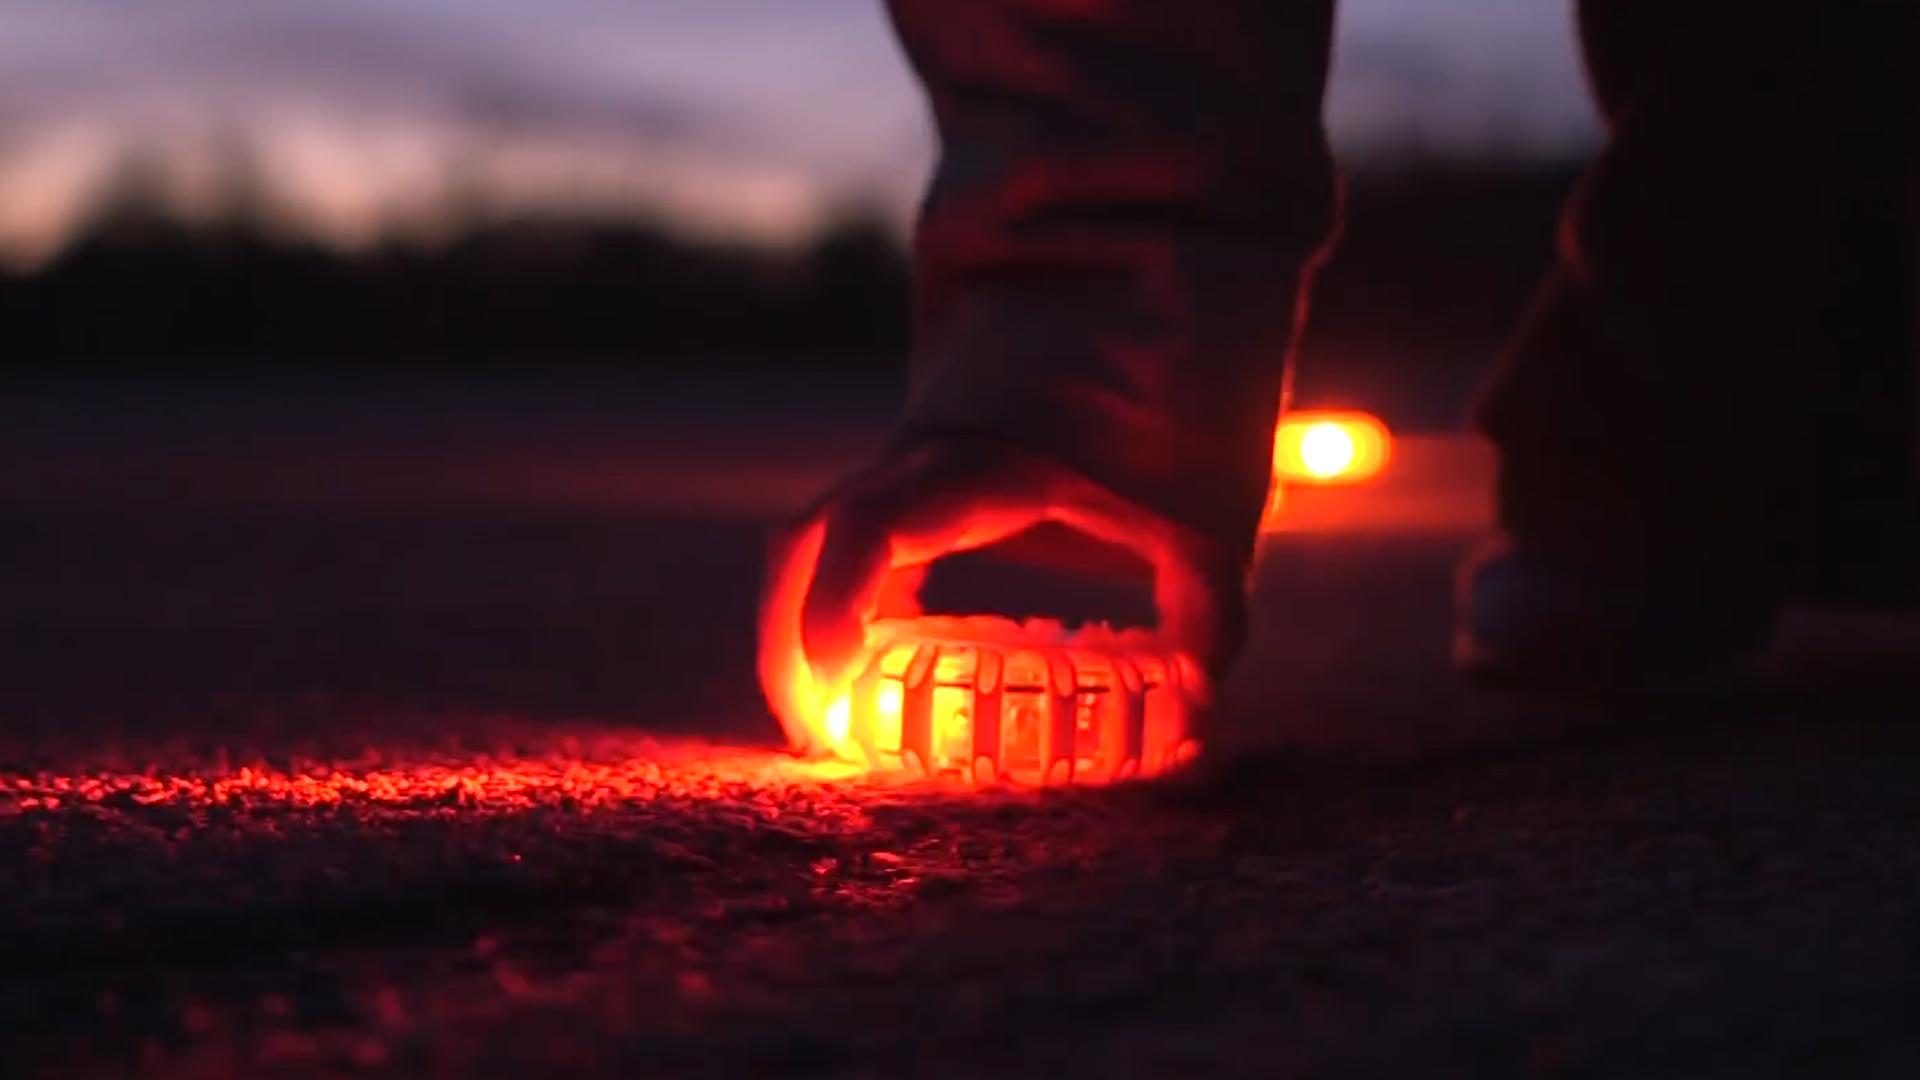 This rechargeable safety light doubles as a road flare